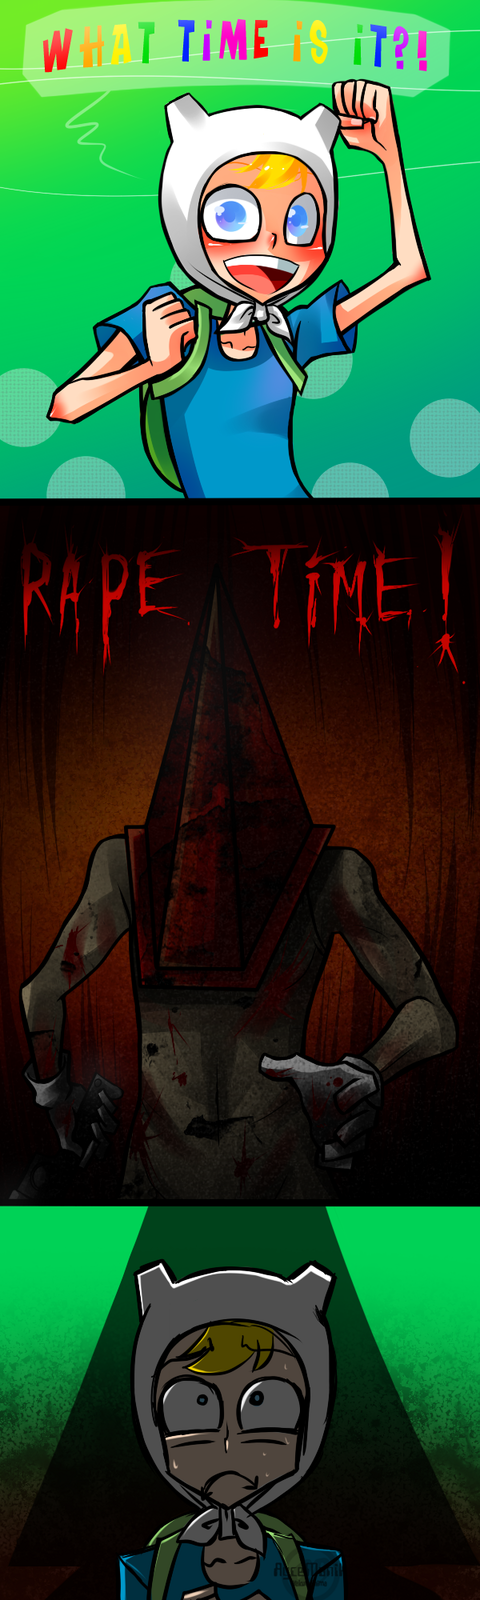 the_time_please__by_maniacalartist-d386cw3.png